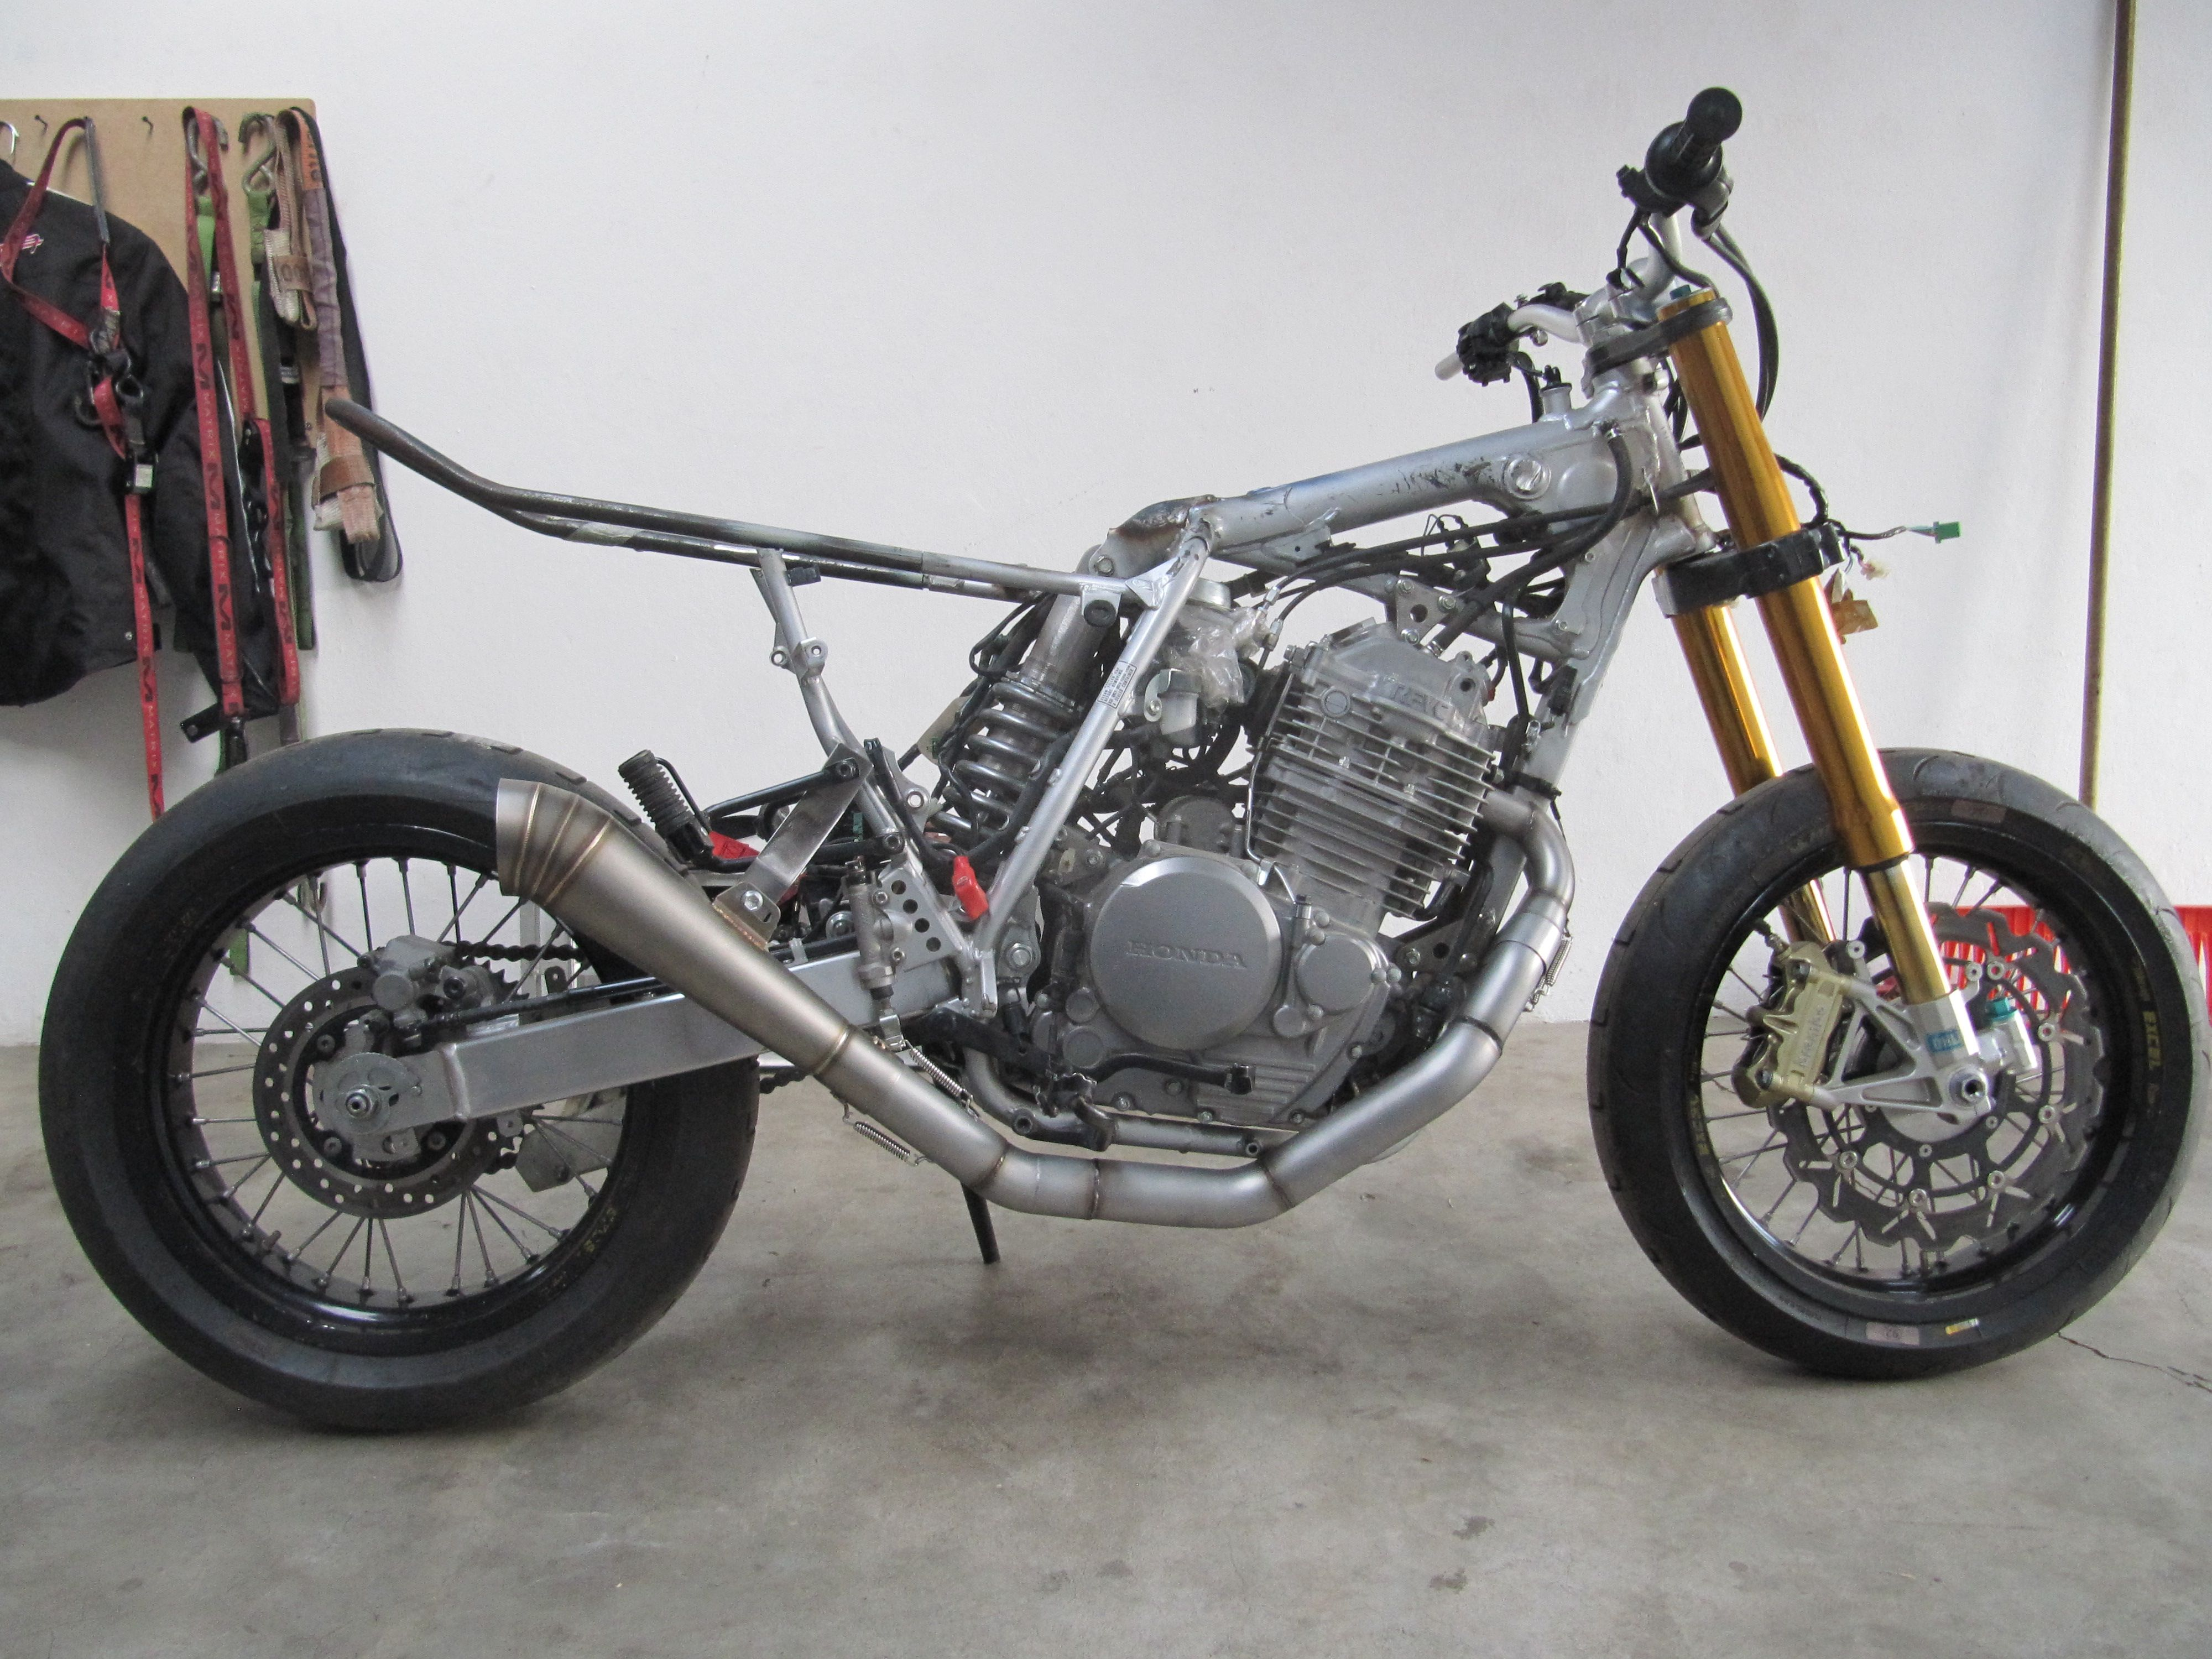 honda xr 650 exhaust just fitted looks tit honda xr. Black Bedroom Furniture Sets. Home Design Ideas